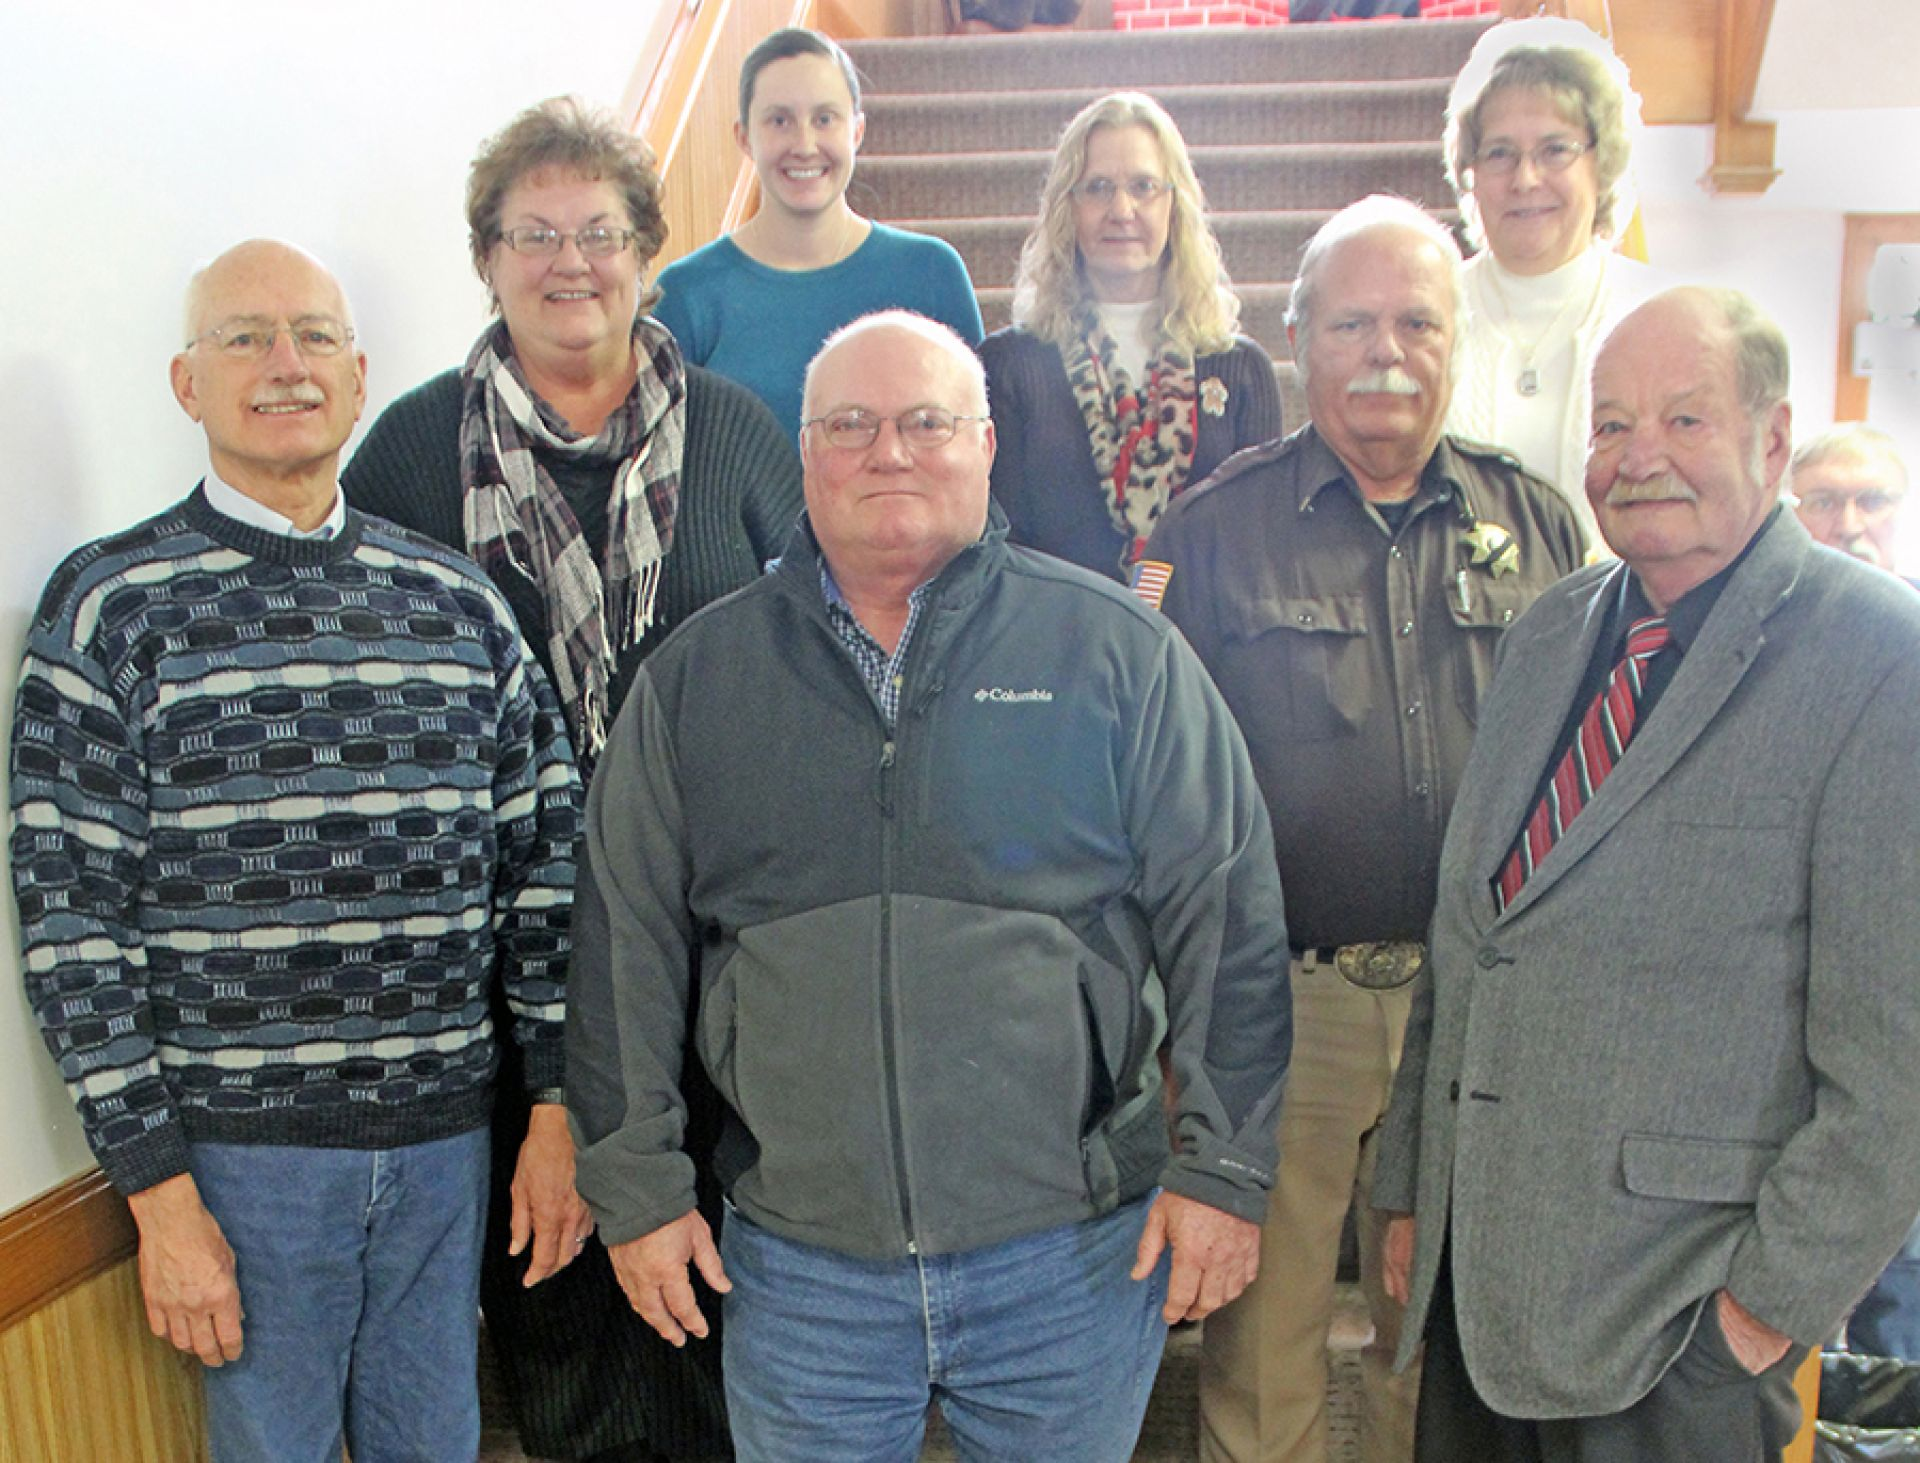 Chairperson Dan Kling stands with his fellow commissioners and county workers on his last day. Front from left to right: James Krotz, Dan Kling, Jack Andersen Middle: Sid Coburn, Terry Robbins, Dwaine Sones Back: Amanda Lane, Carol Stouffer, and Peg Sones.